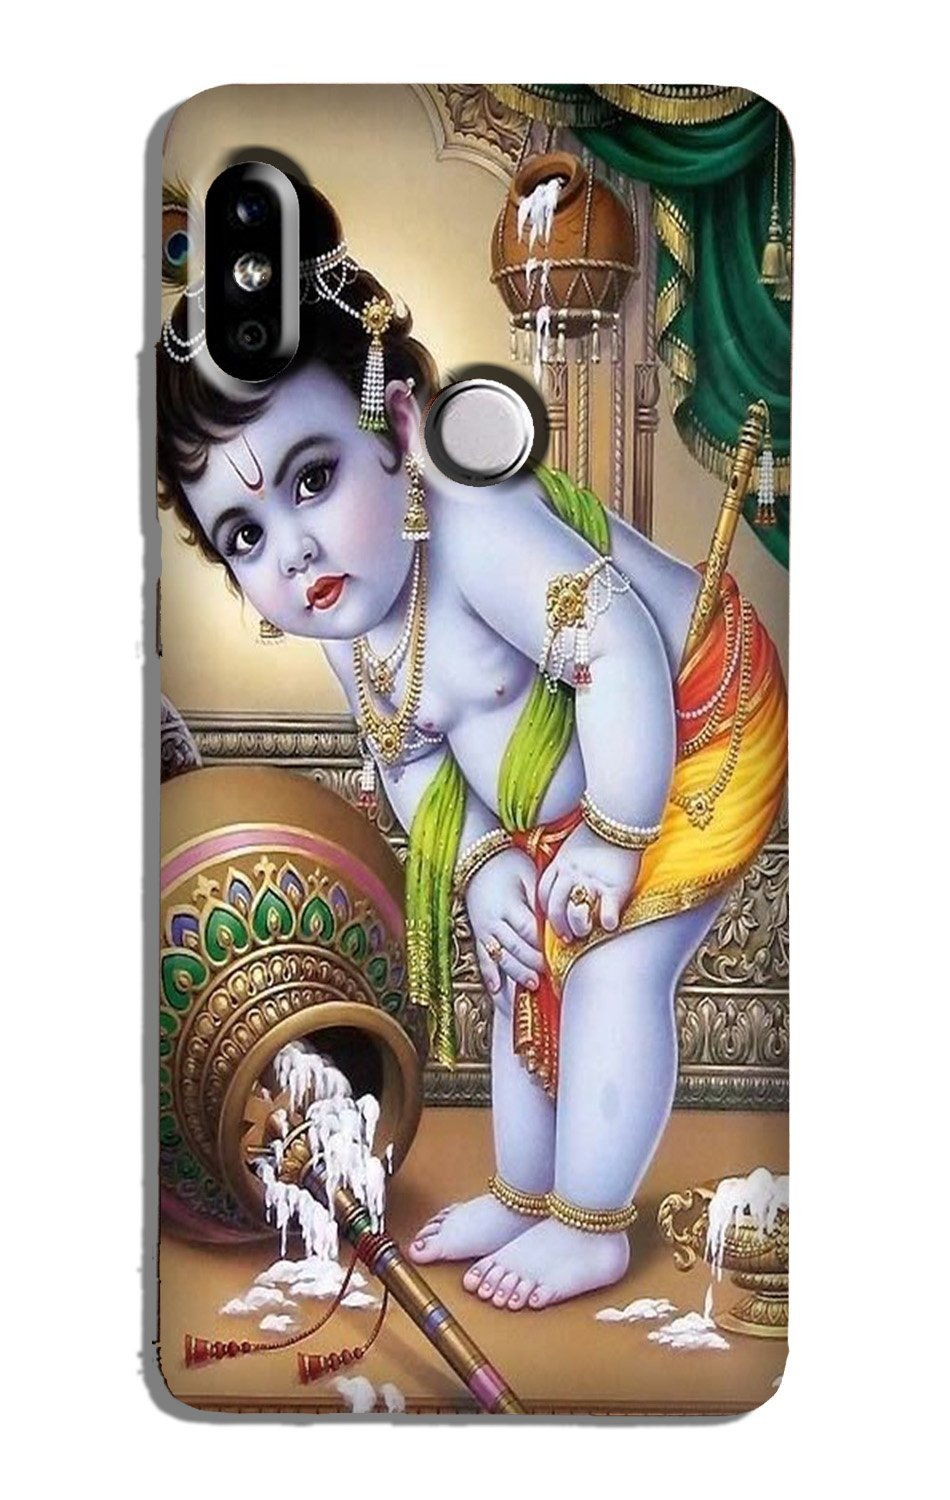 Bal Gopal Case for Redmi Note 5 Pro